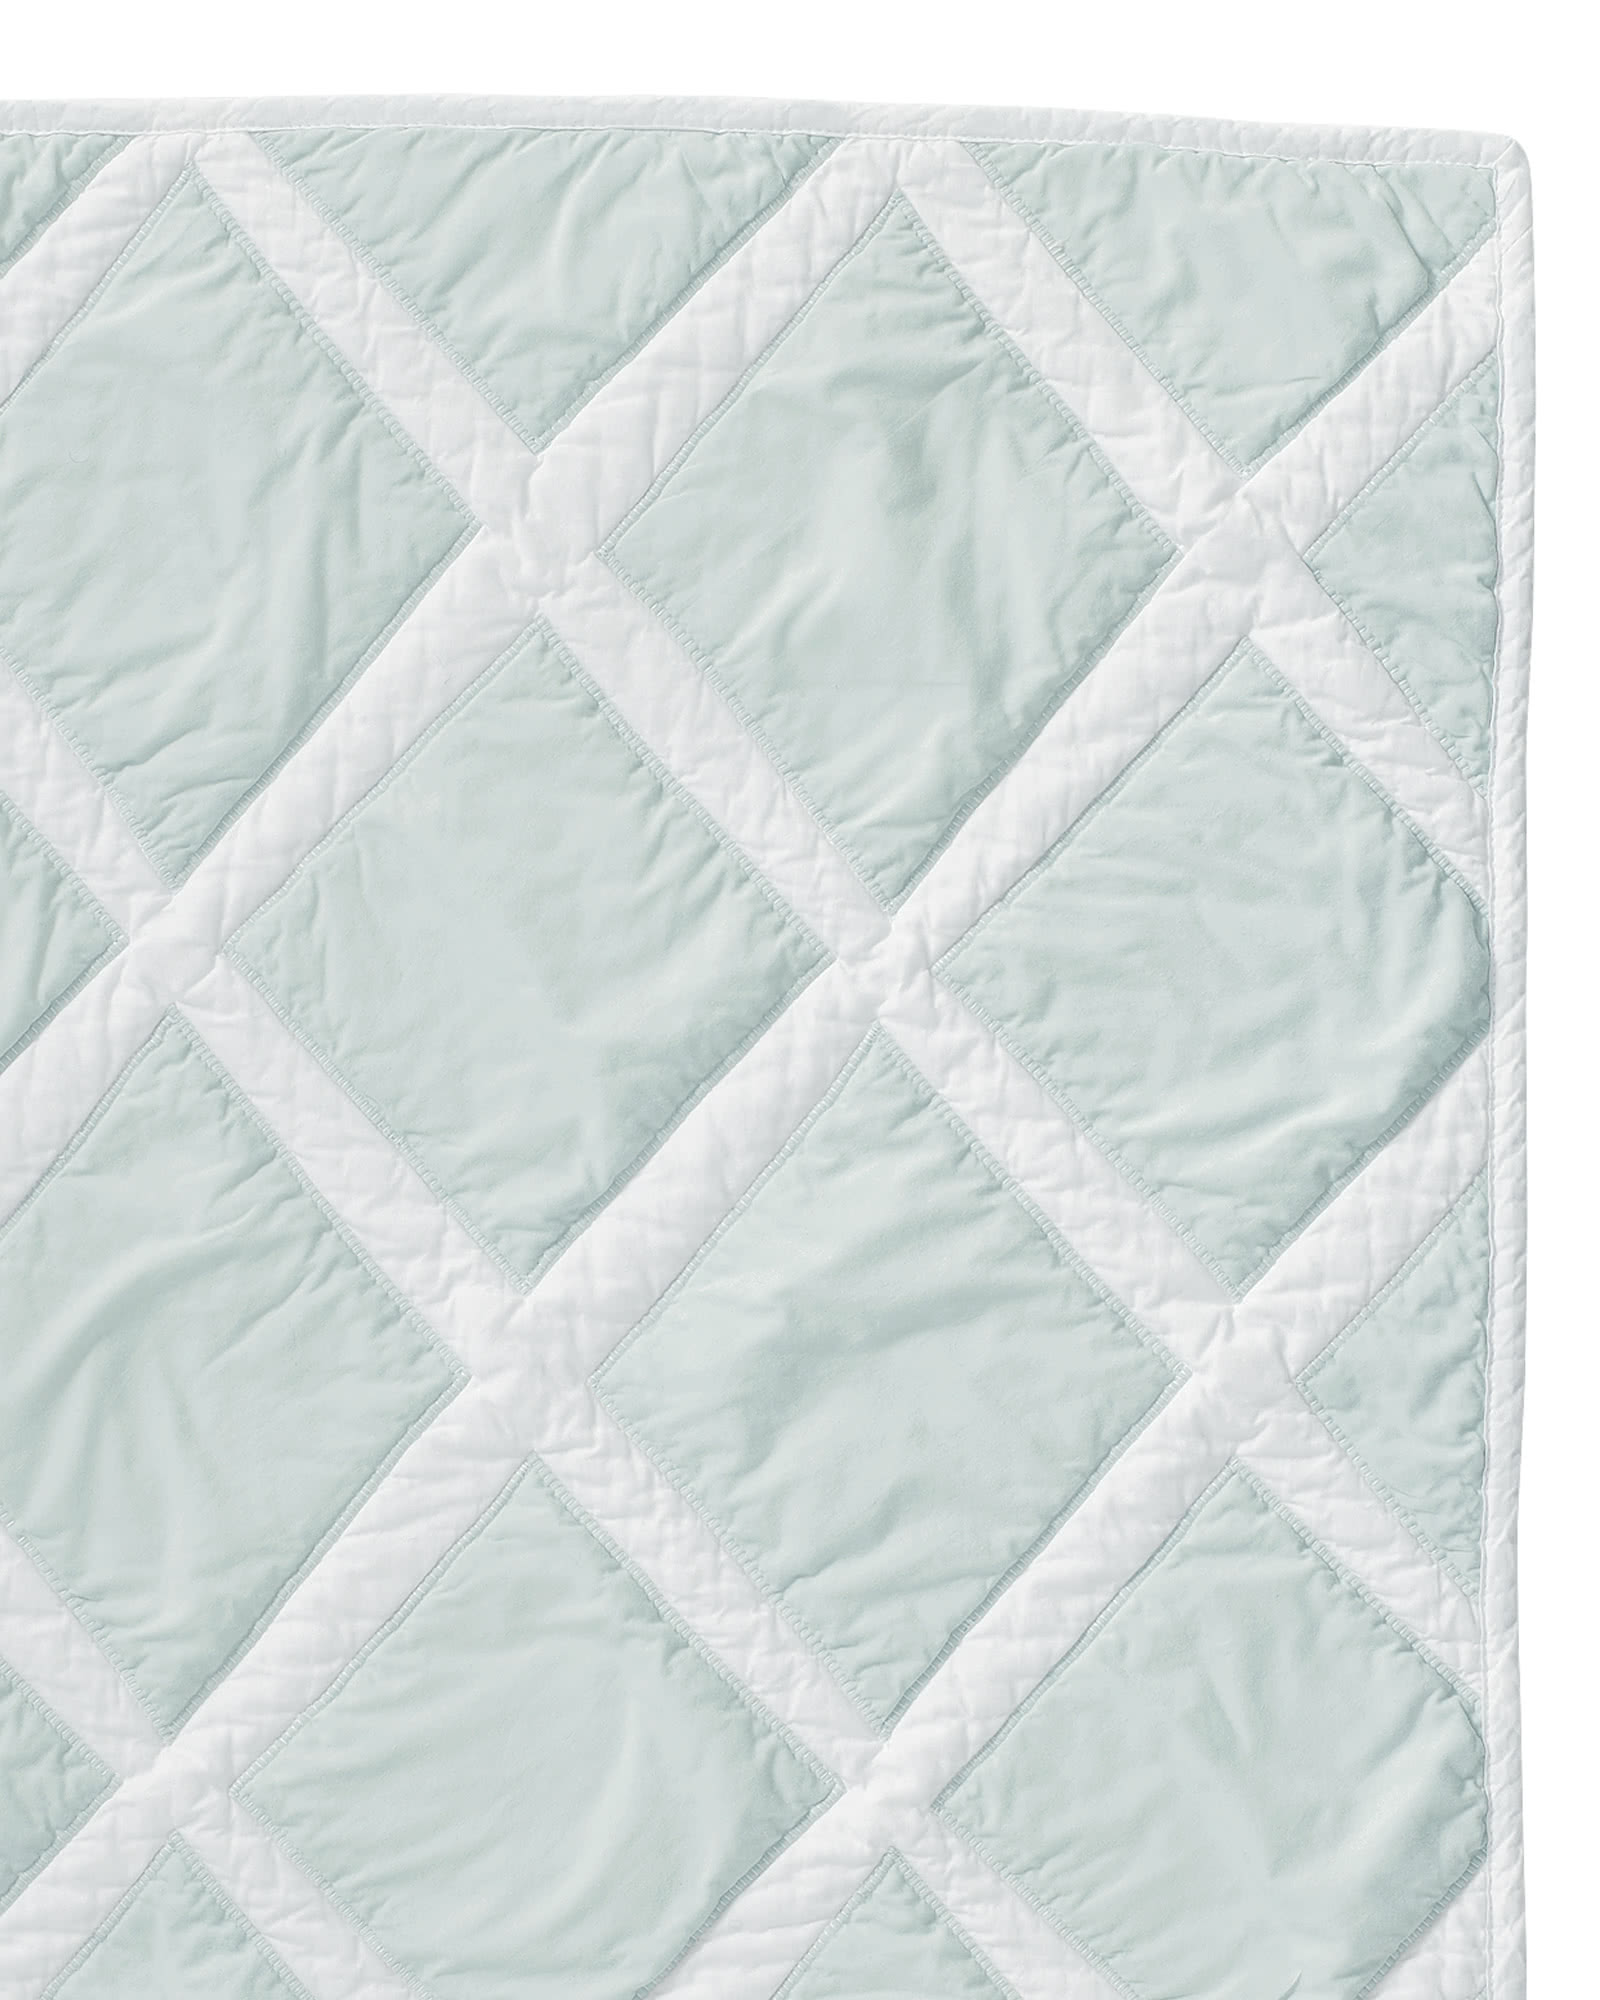 Serena And Lily Diamond Quilt Sham Serena Lily